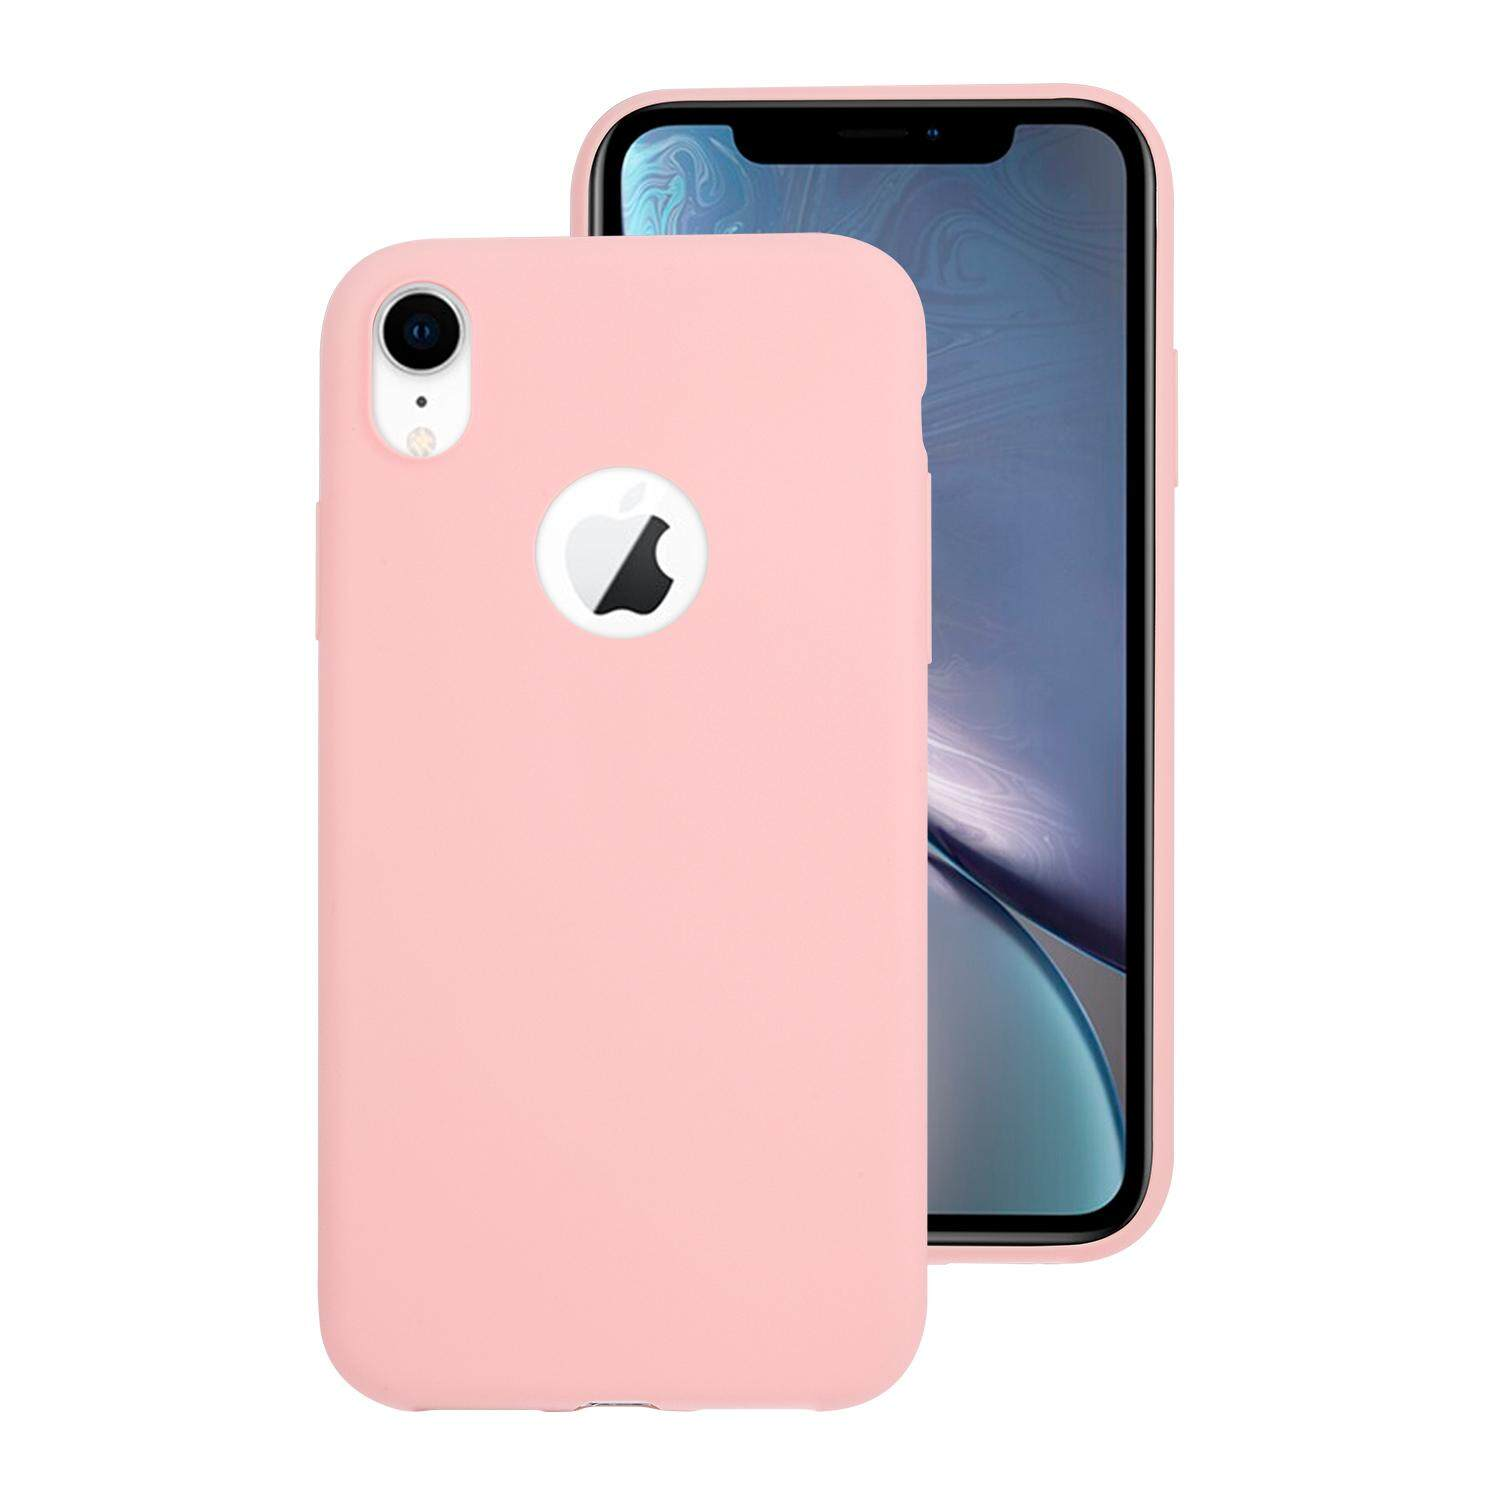 iPhone XR Case Macaron Candy Icecream Color Series Original Soft Silicone Mobile Phone Case for iPhone